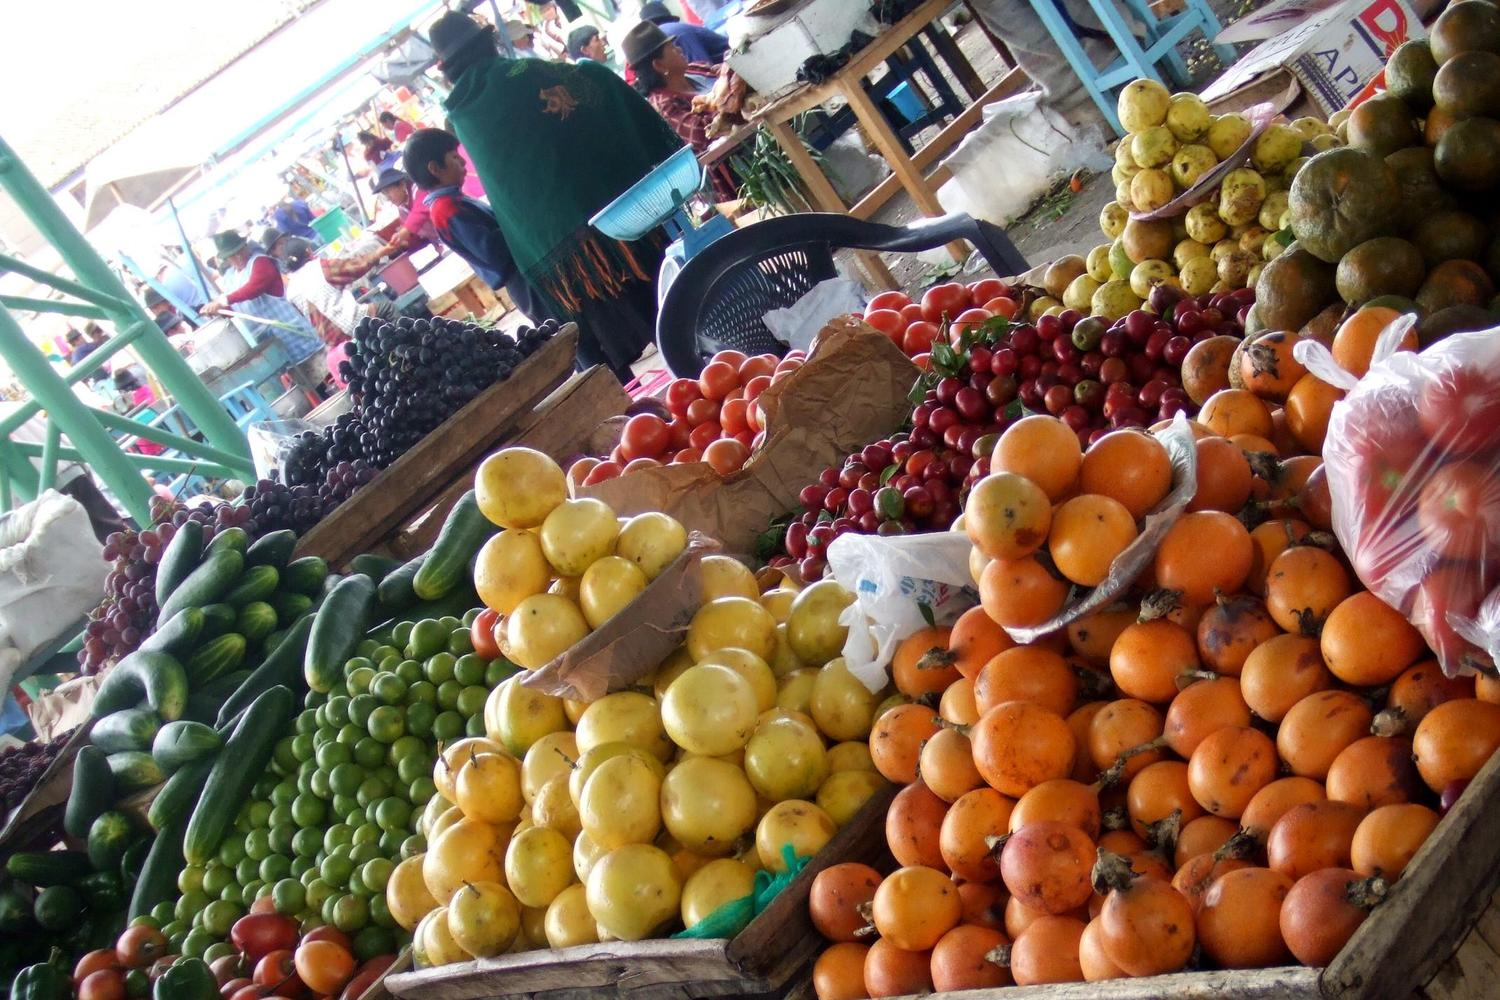 Fruit and vegetables for sale in Saquisilli market